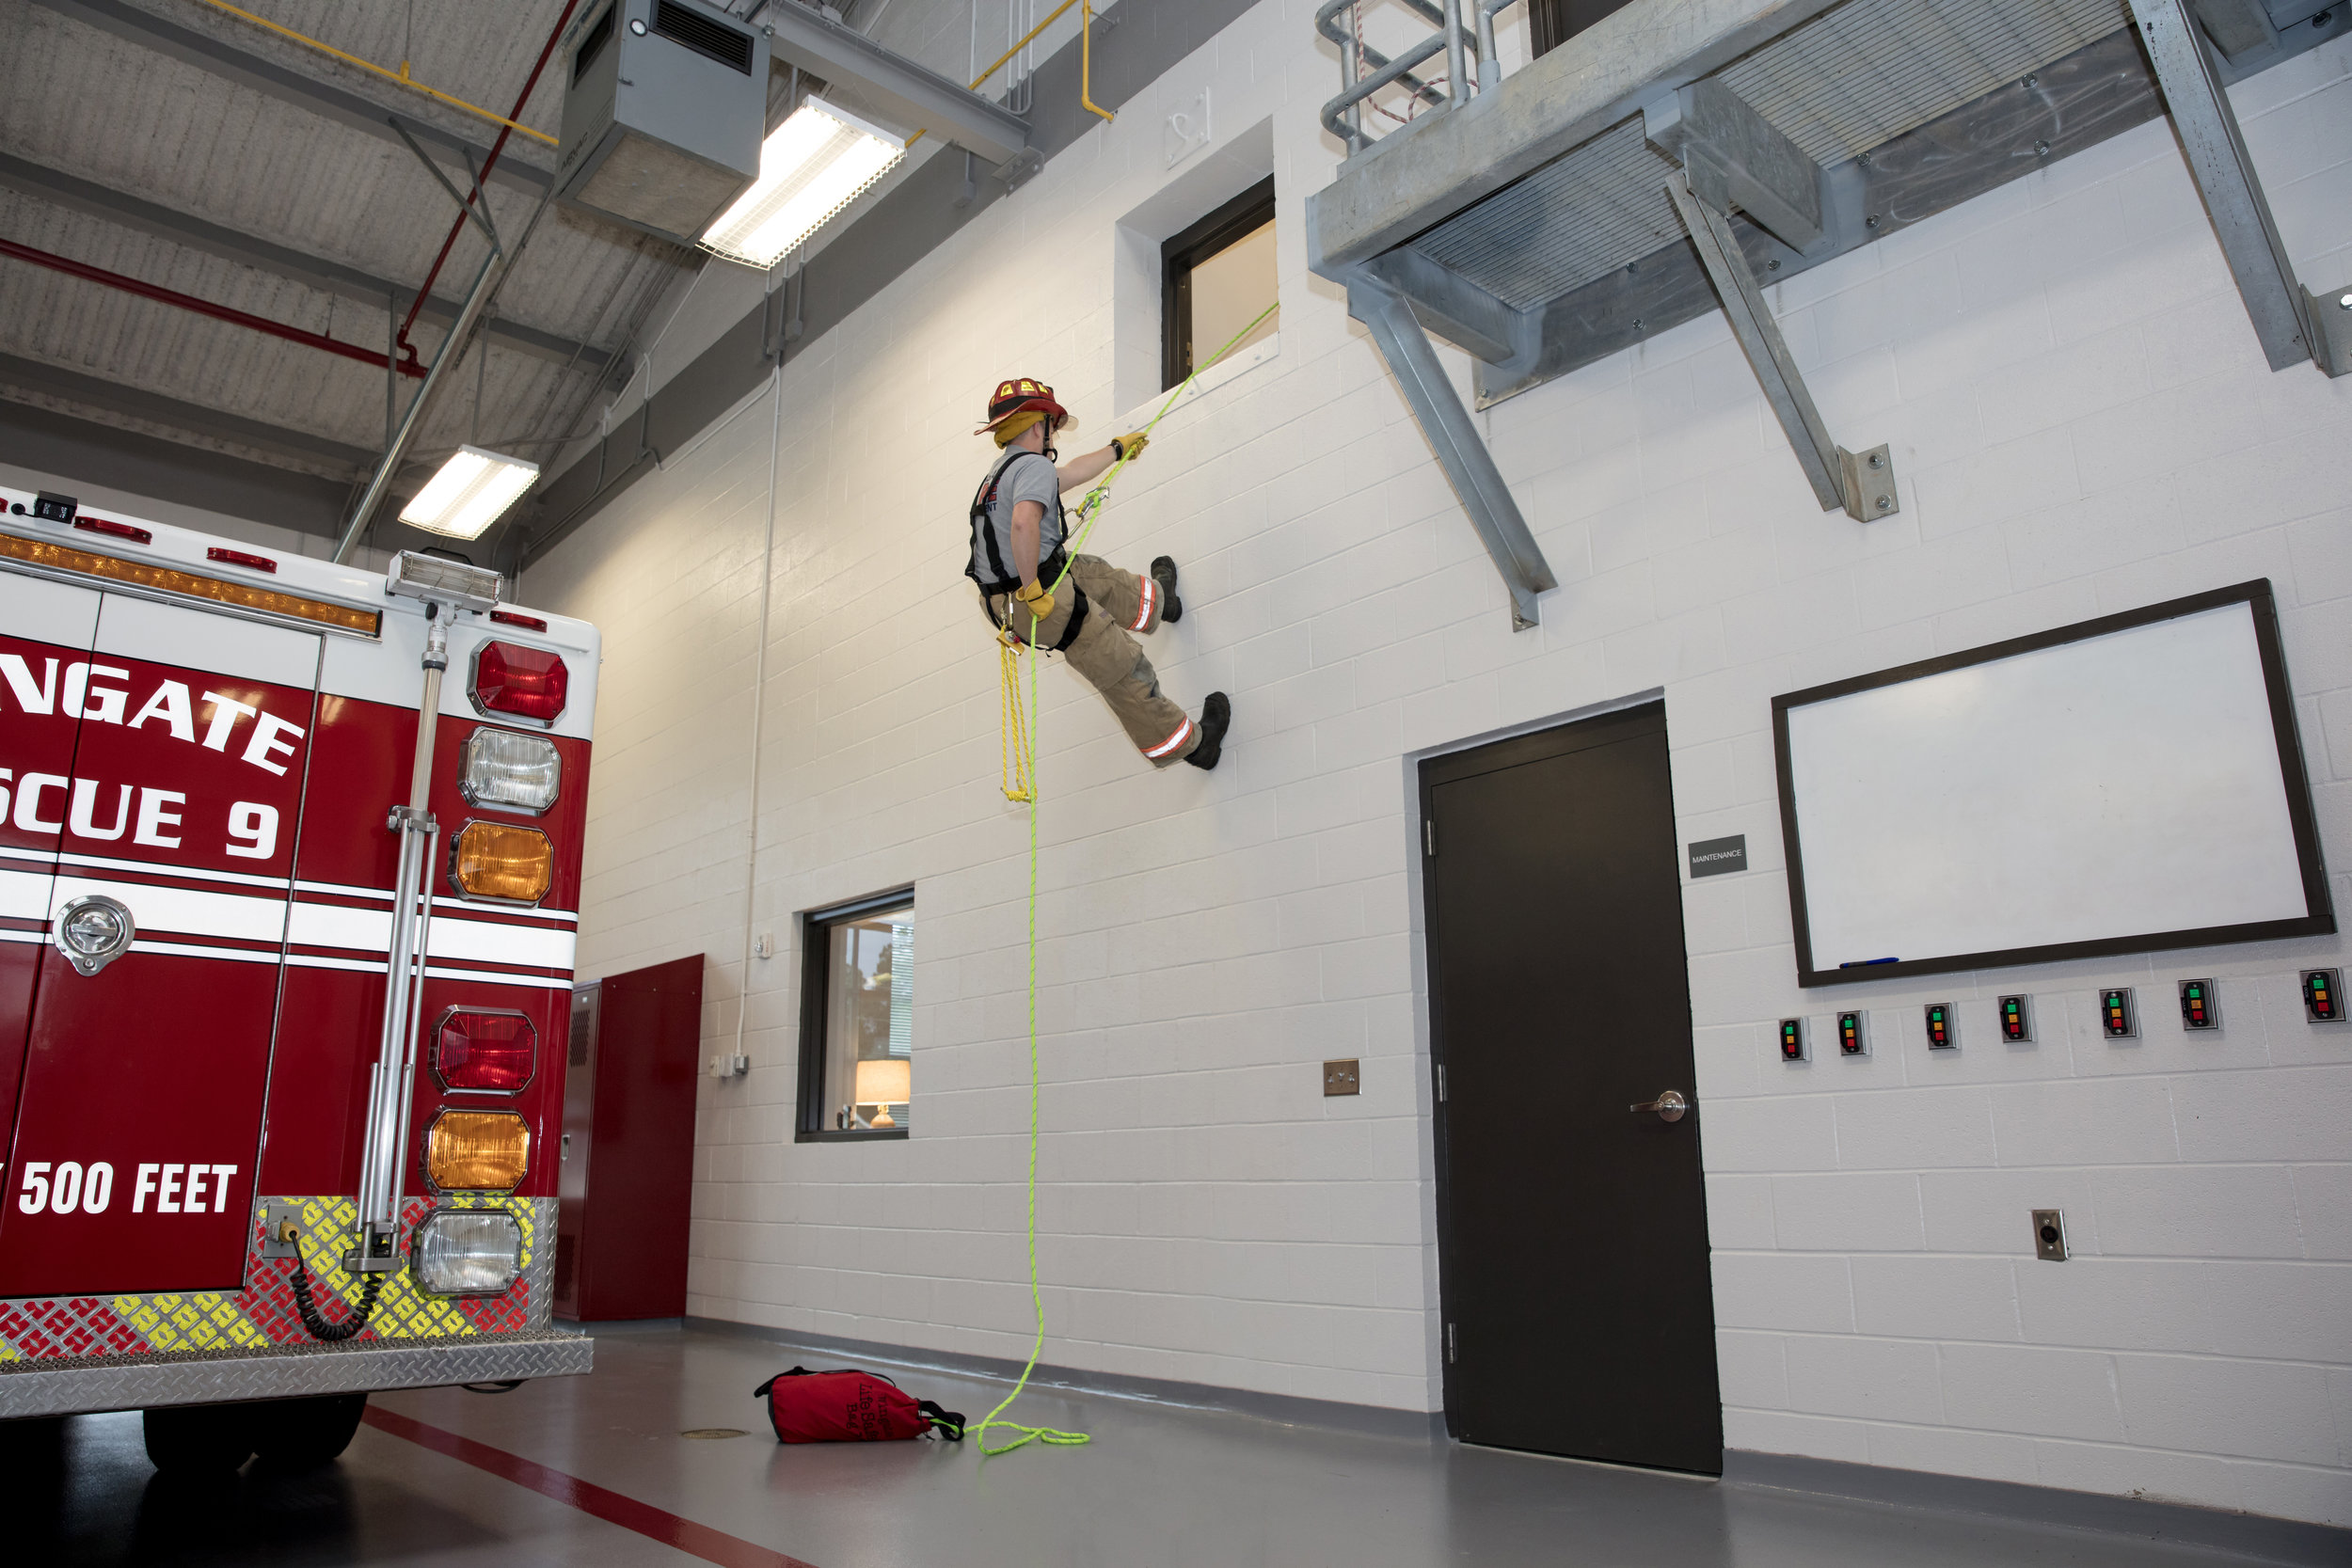 ADW-Civic-Public-Safety-Town-Hall-Fire-Station-Wingate-NC-Training.jpg